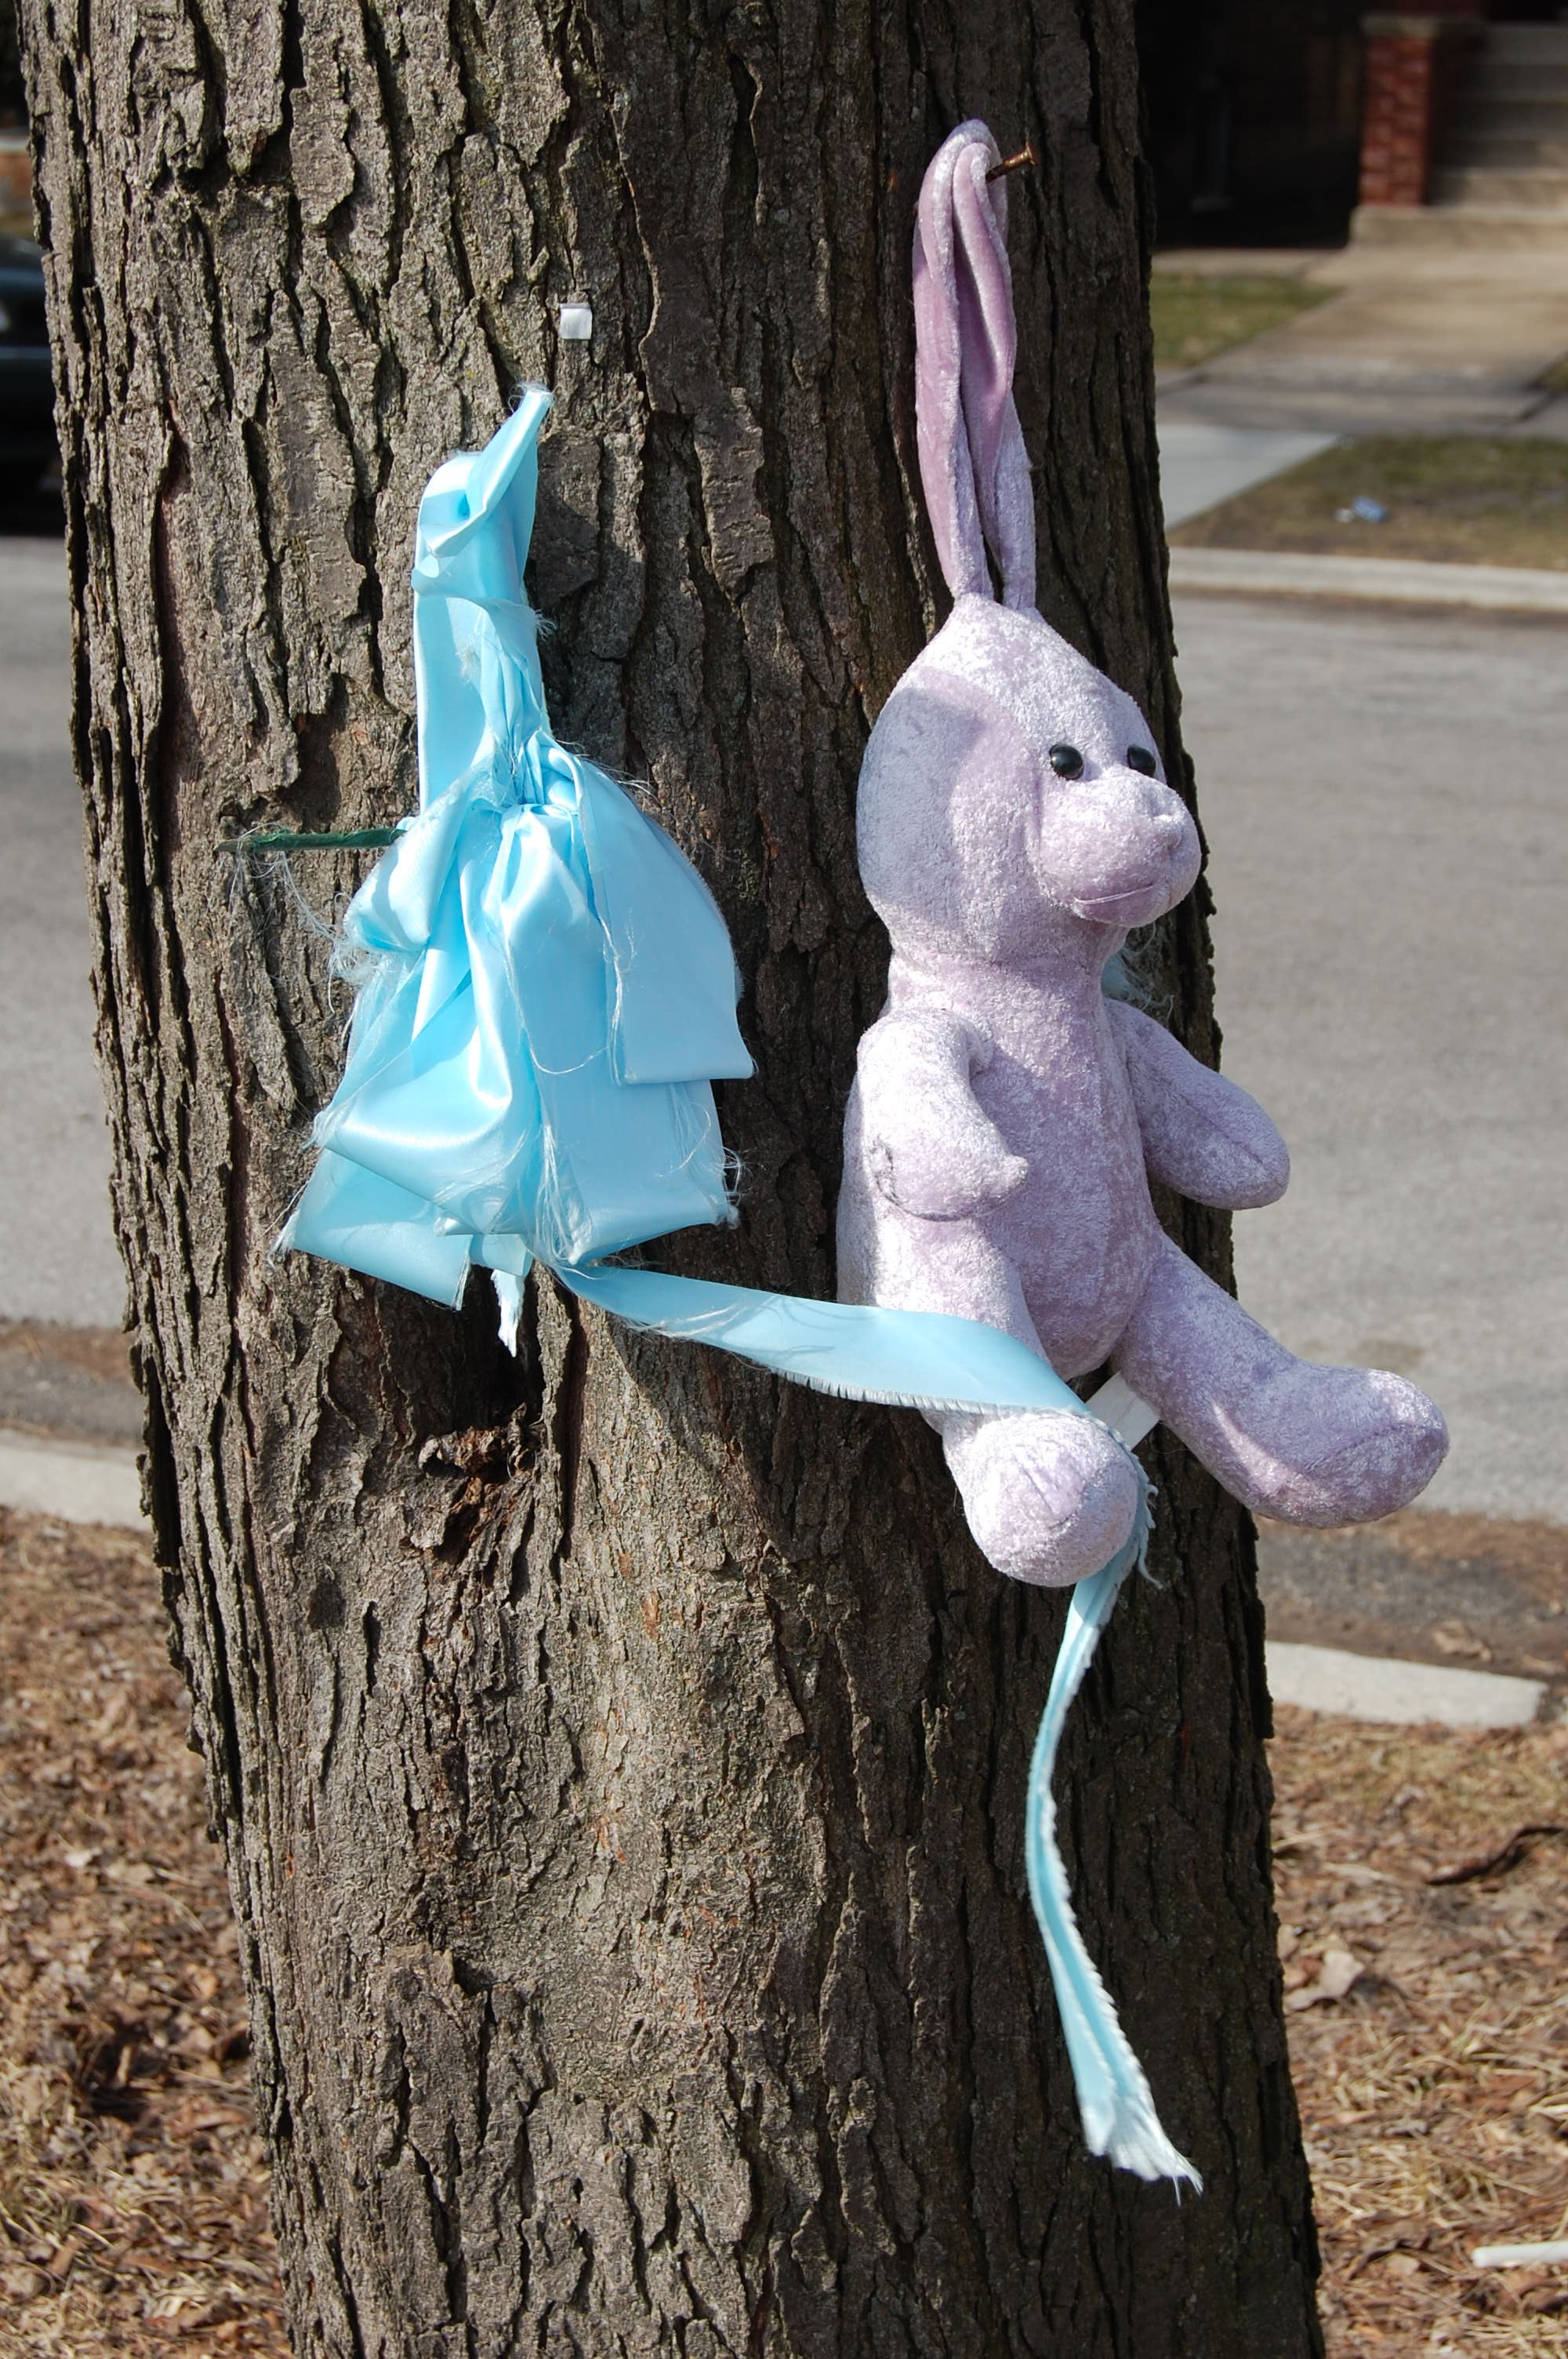 Bunny on 9400 block of St Lawrence